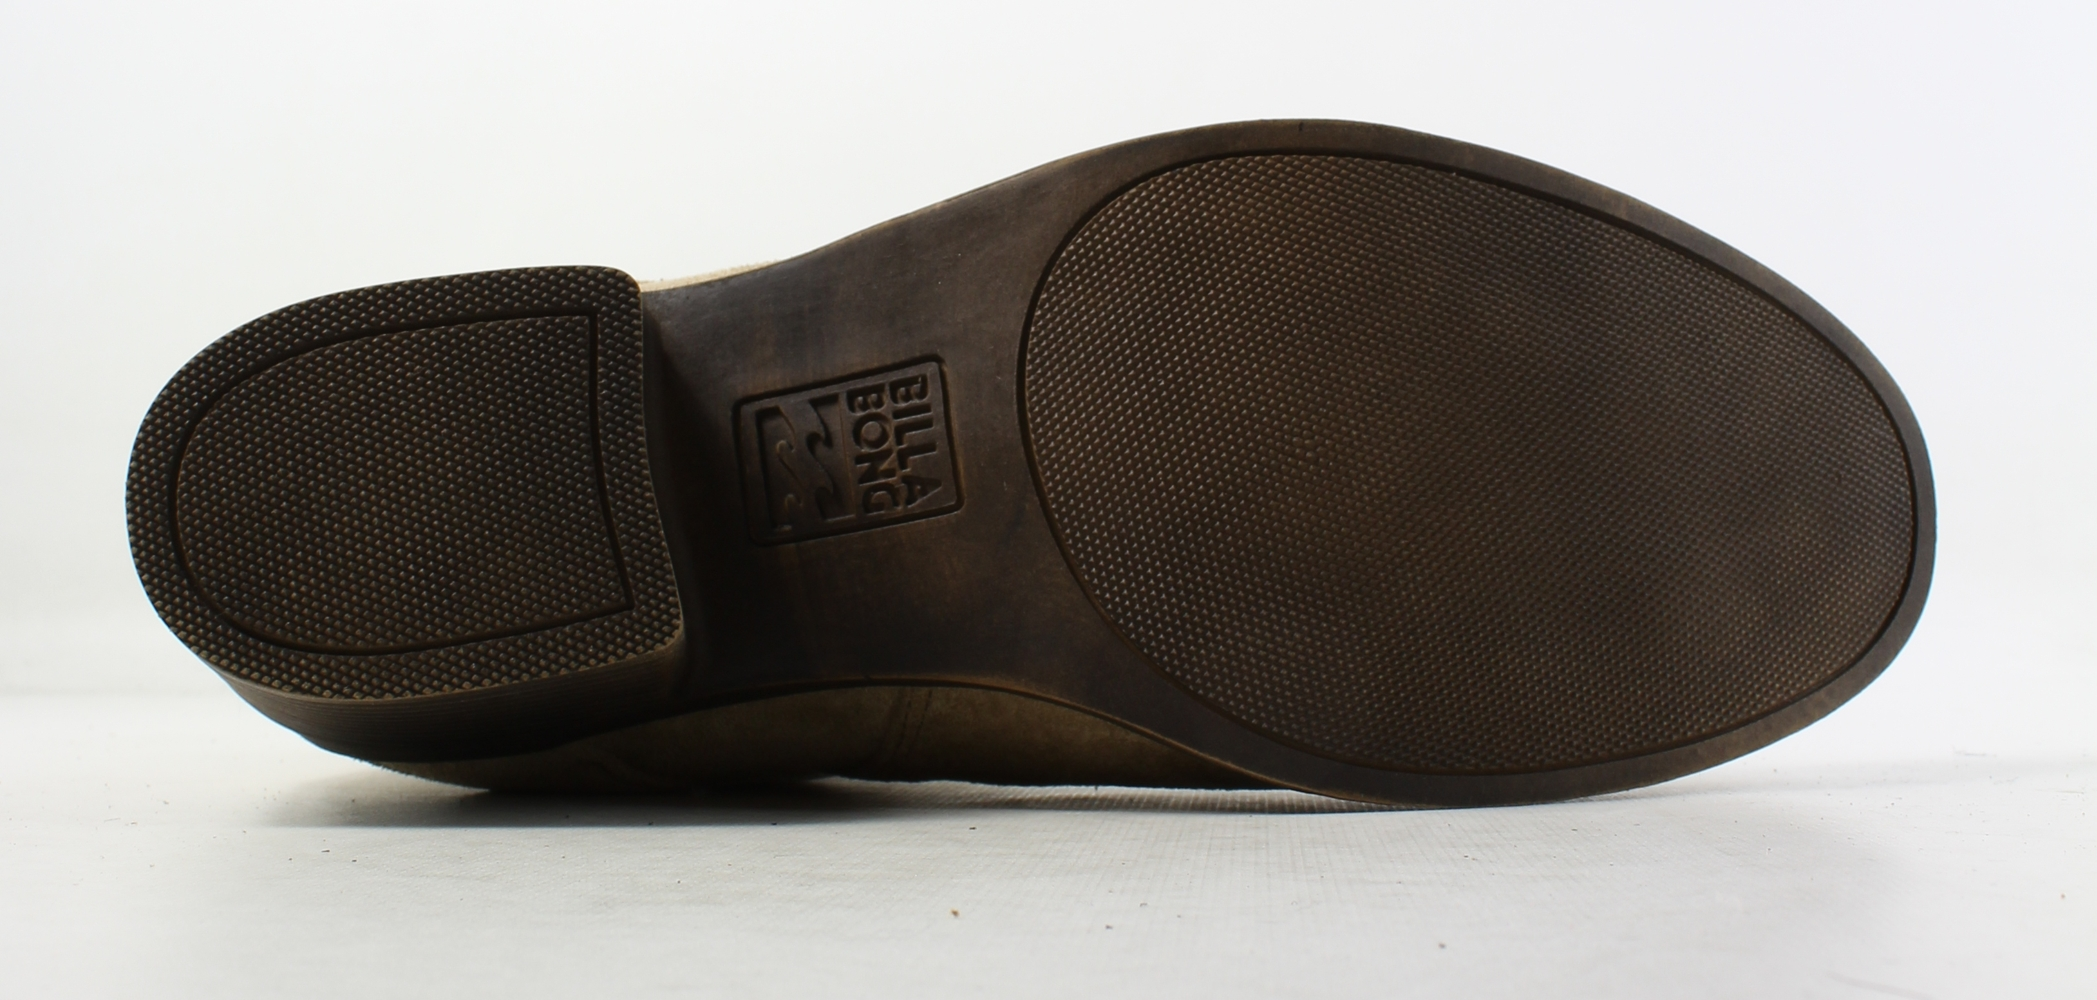 39028756e33c ... Picture 4 of 4. Billabong Womens Jaftlare-Dun Beige Ankle Boots Size 9.5